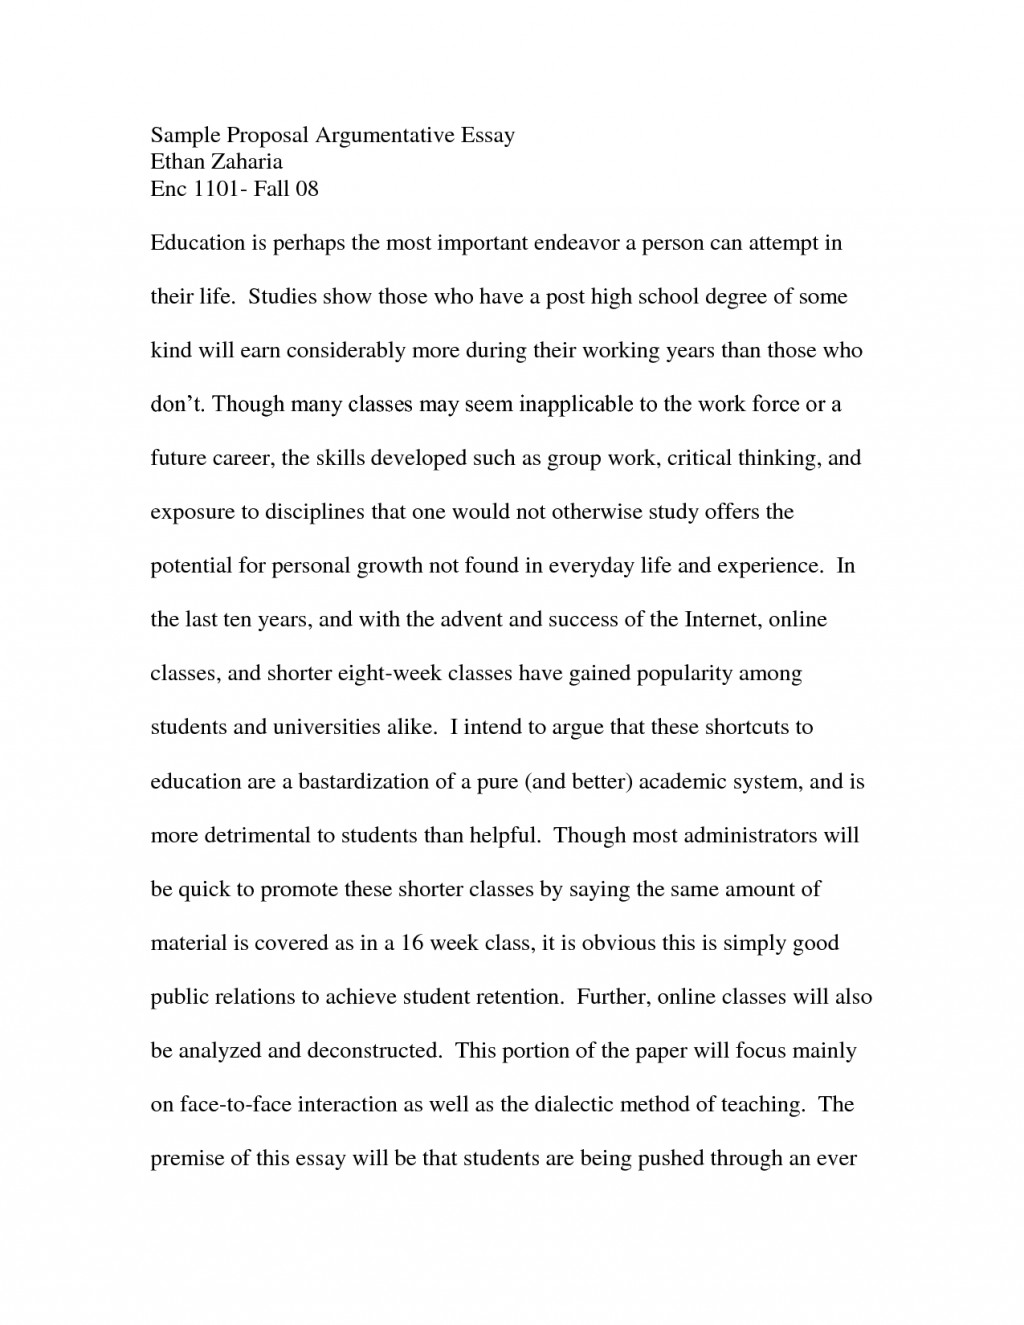 003 Proposal Essay Ideas Example Wondrous Biology Research Topic Topics Psychology Large